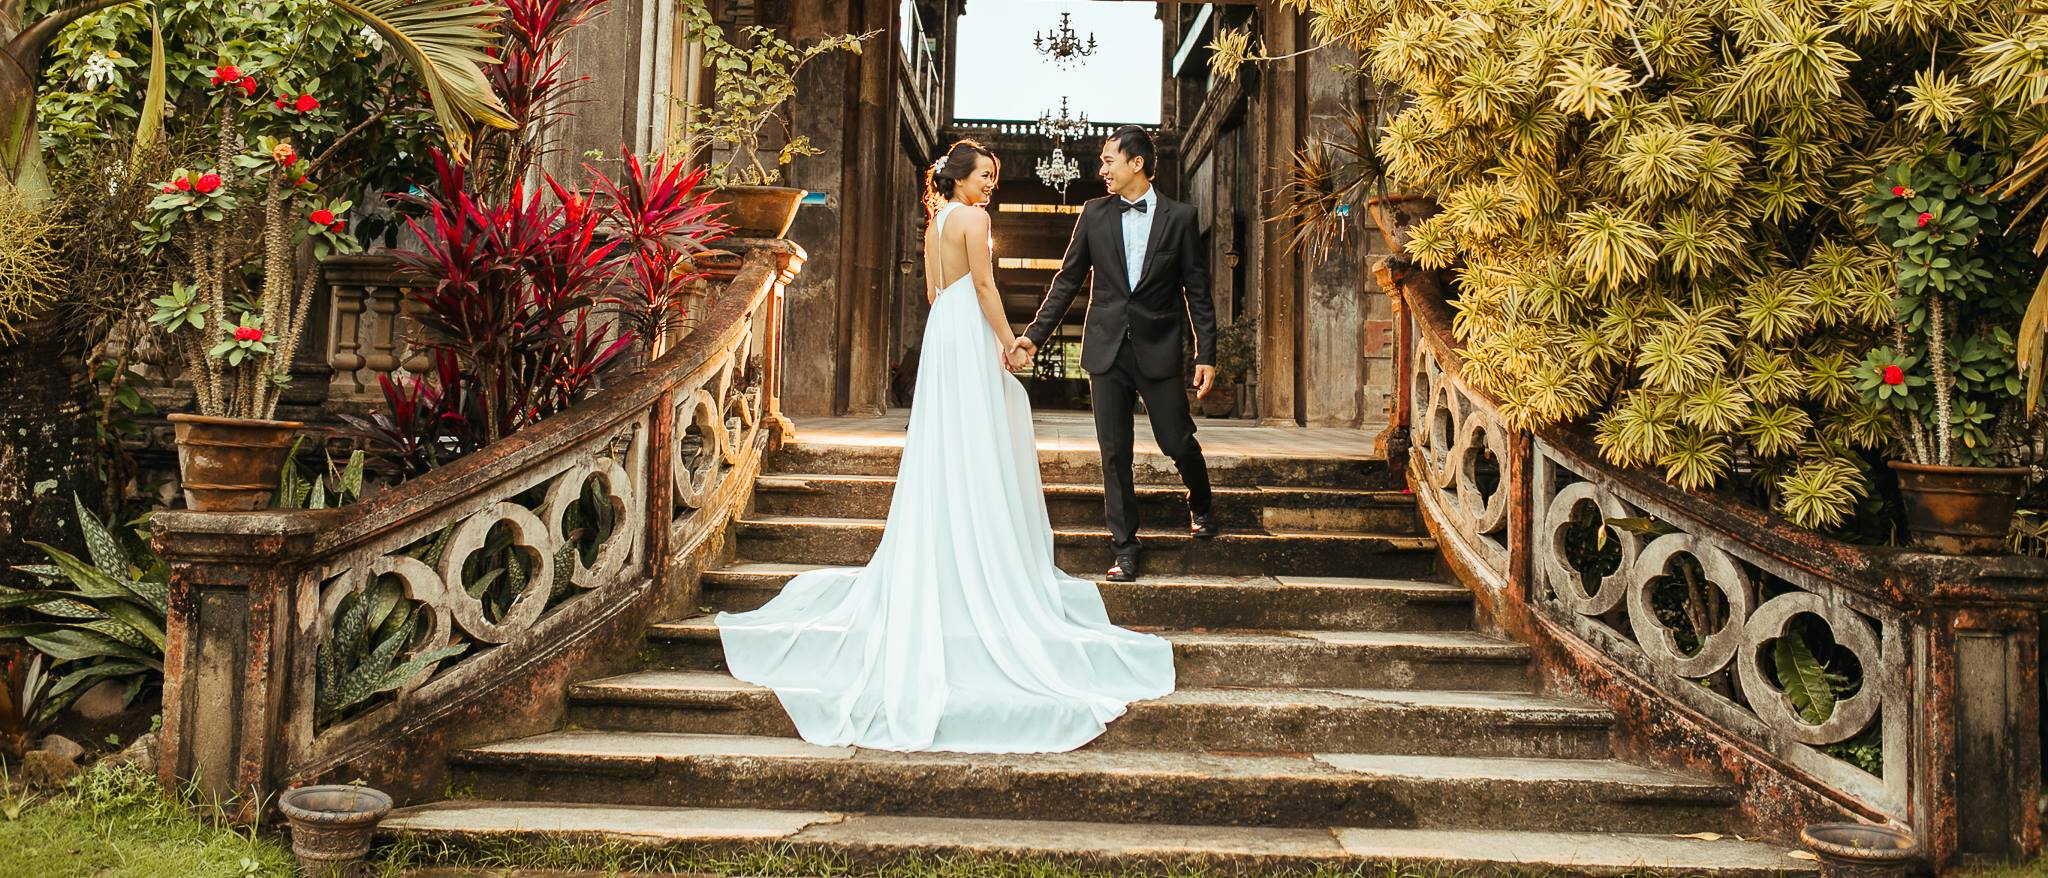 Best Bacolod Wedding Photographer